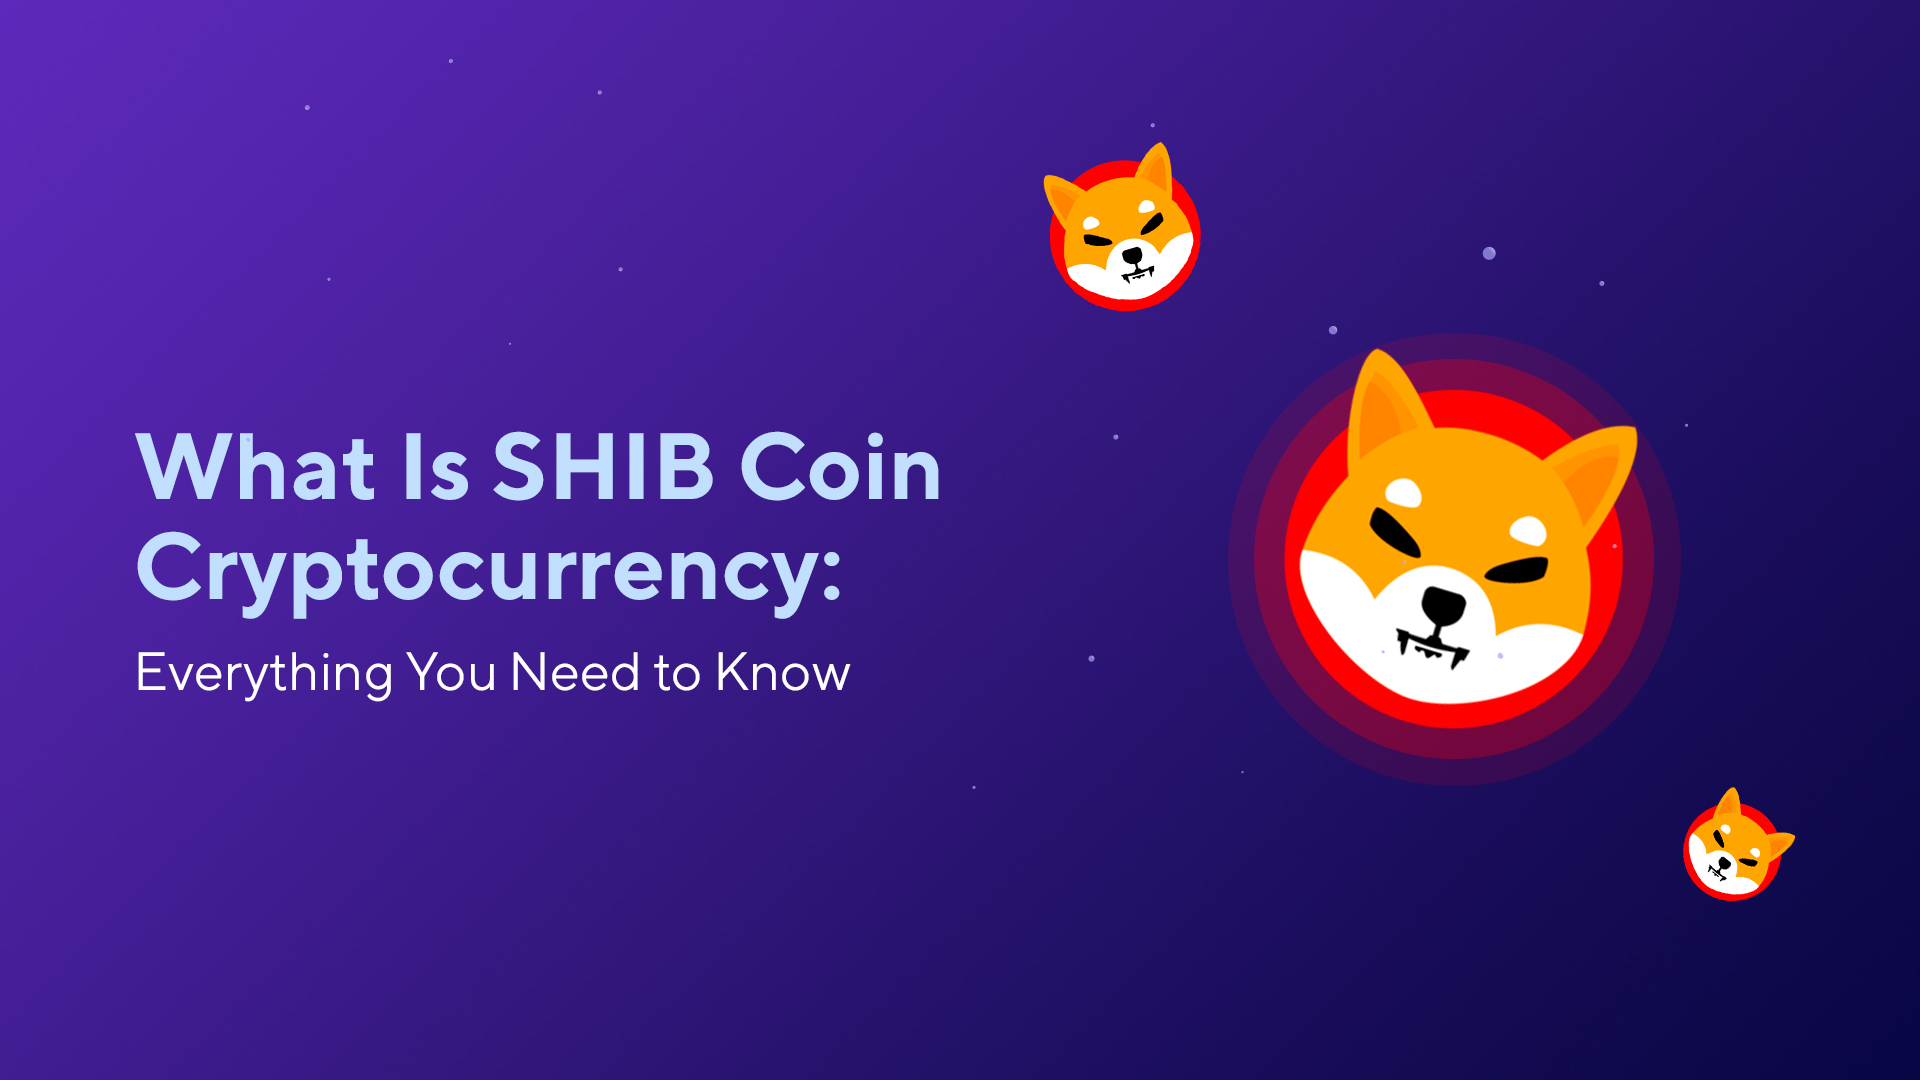 What Is SHIB Coin Cryptocurrency: Everything You Need to Know